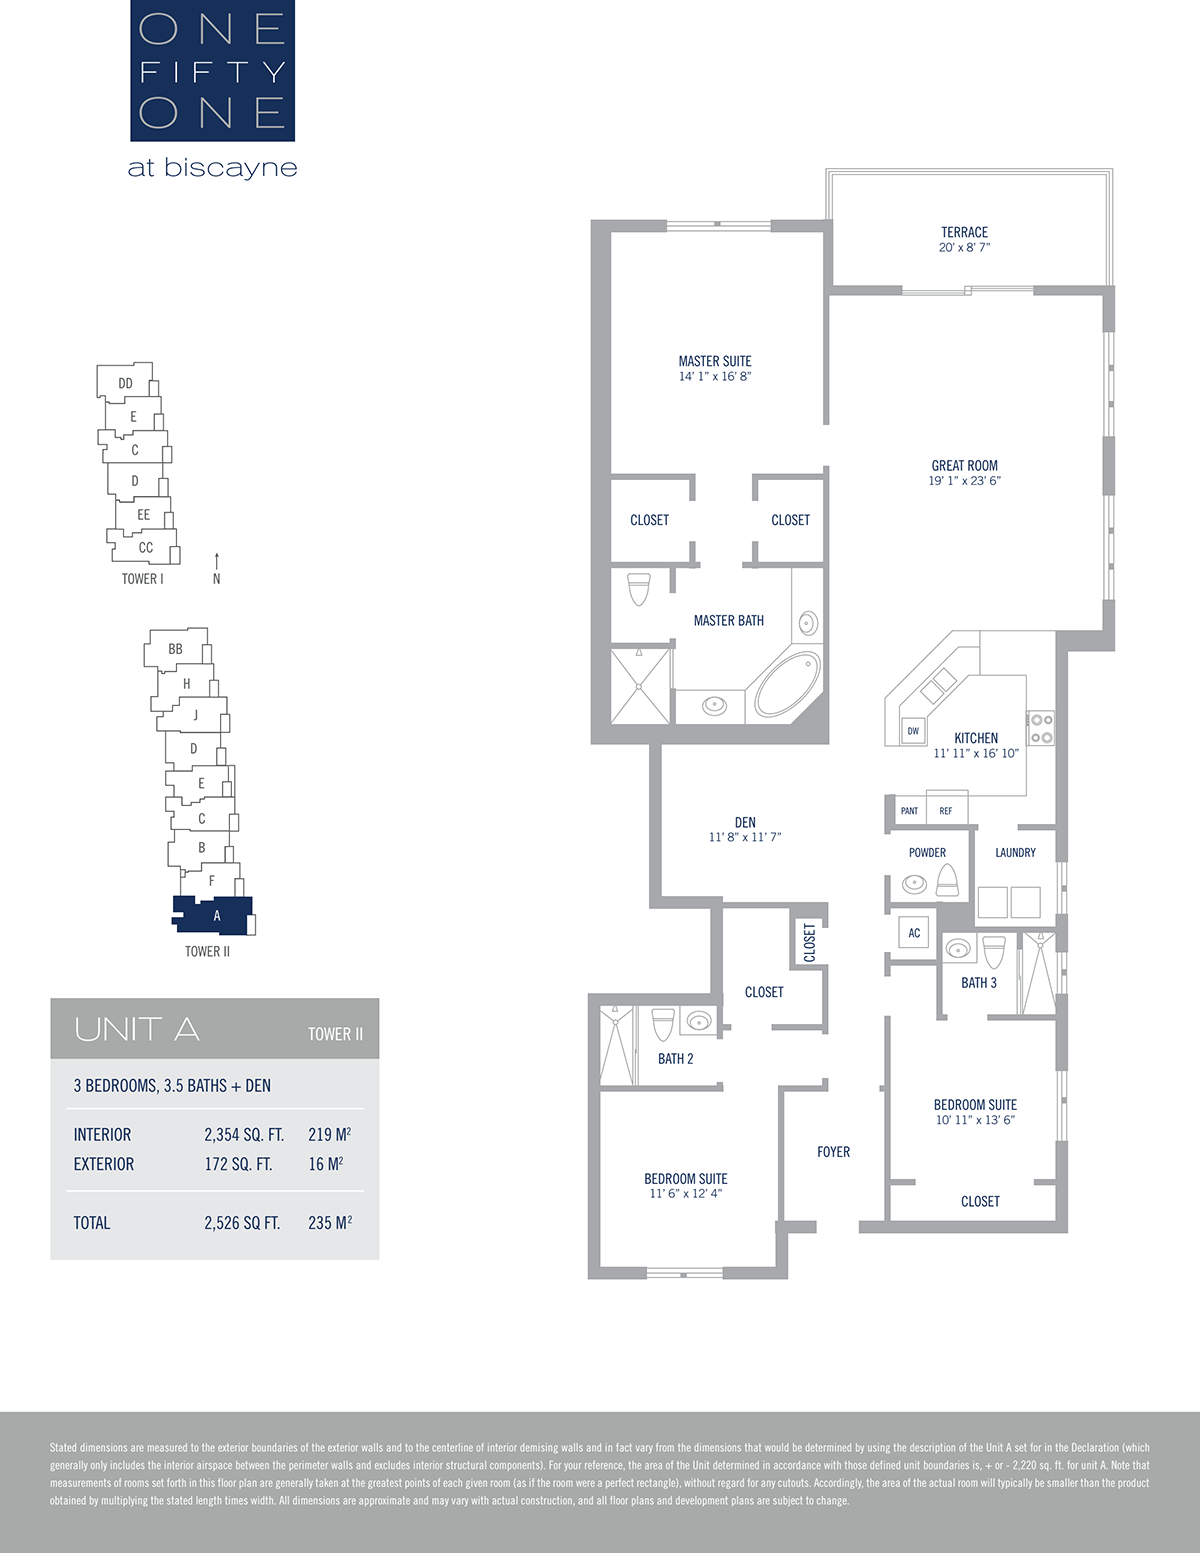 One Fifty One At Biscayne - Floorplan 2